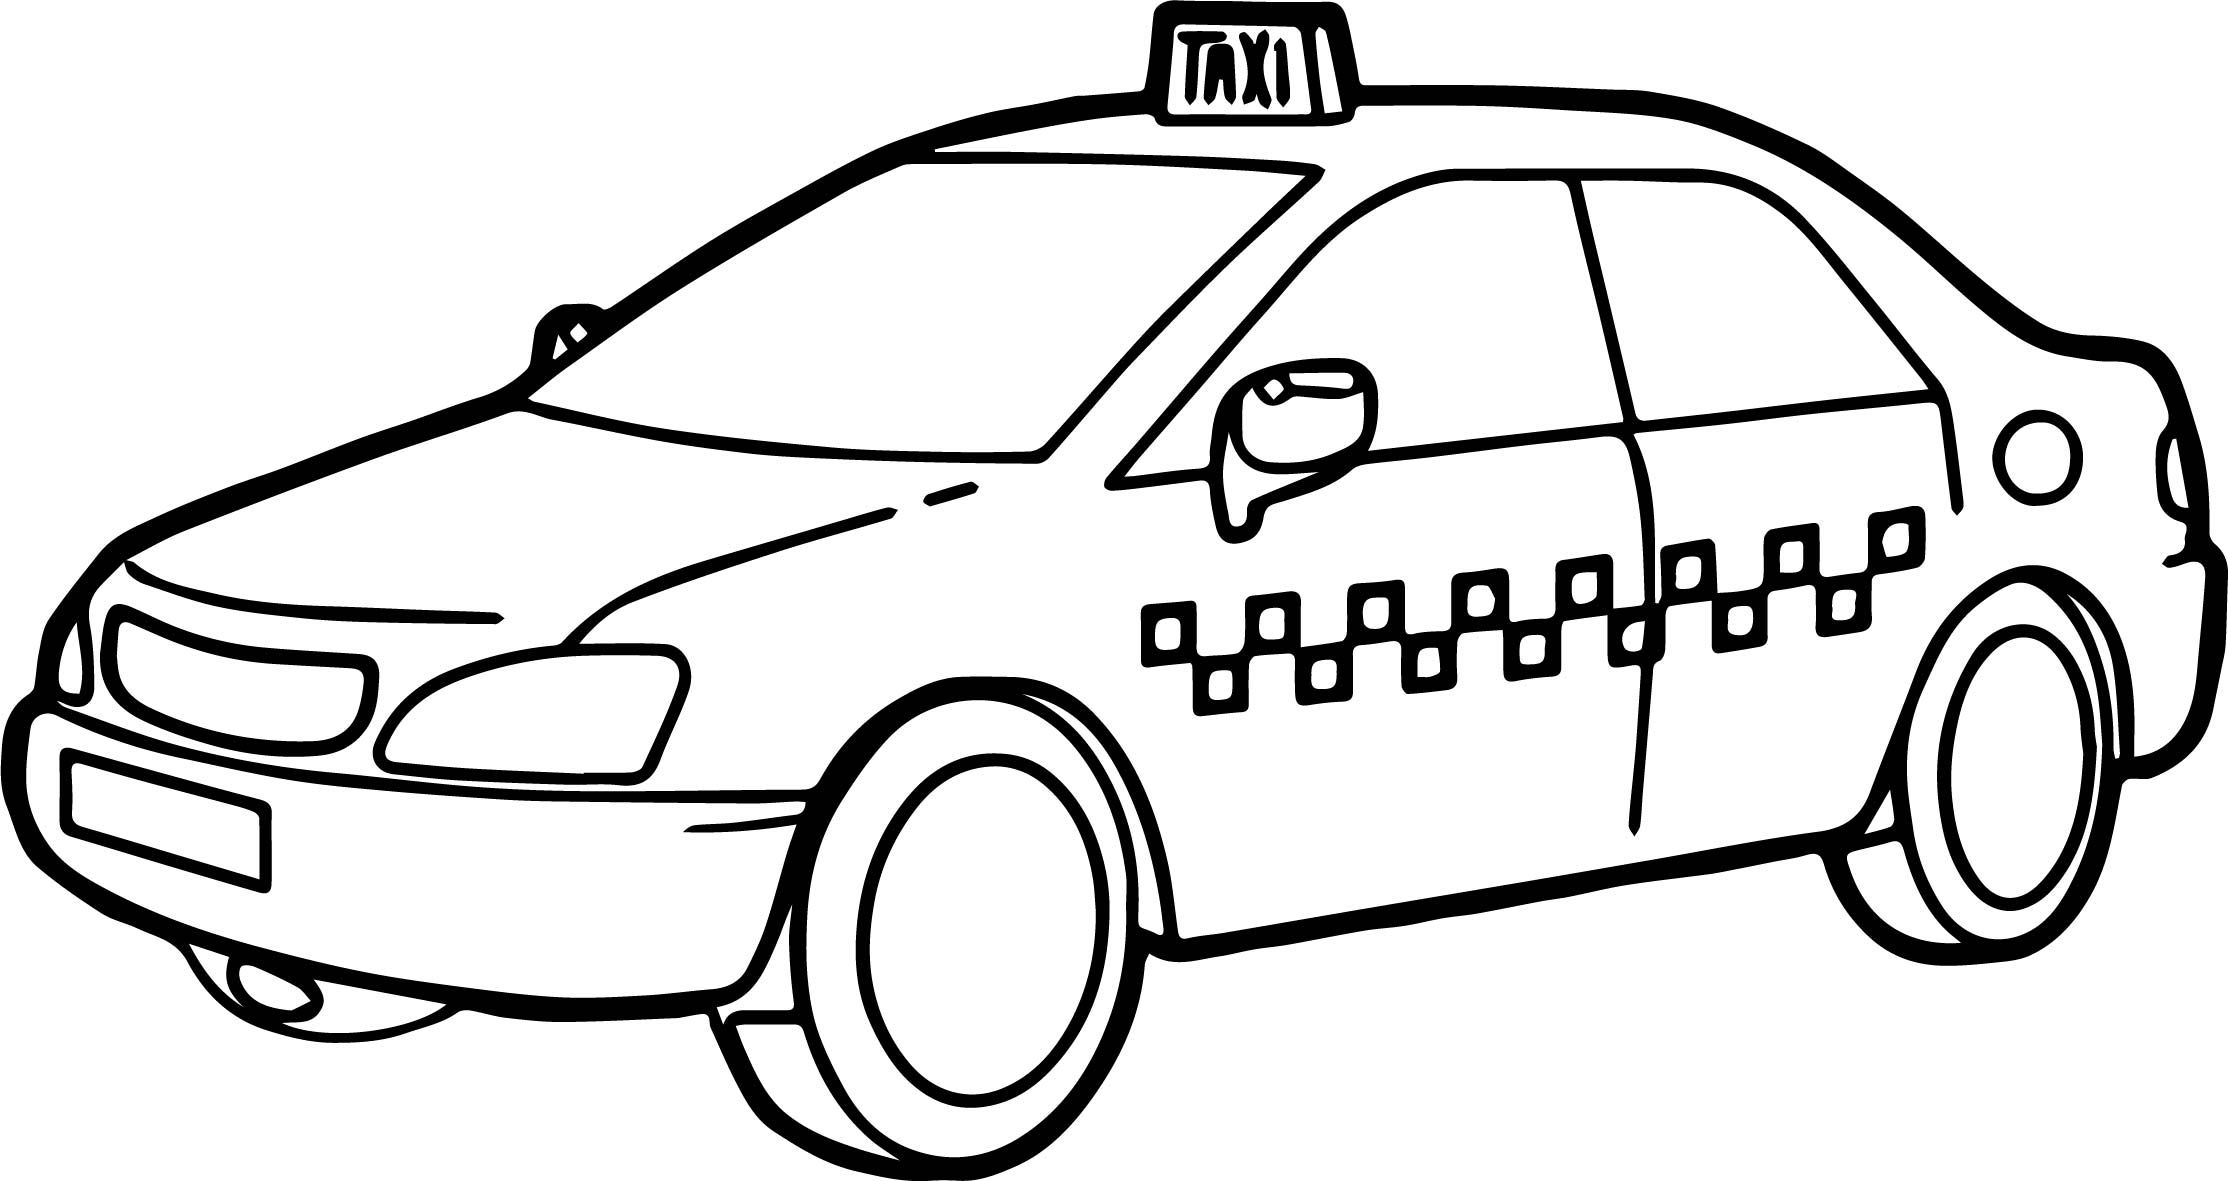 Taxi Driver Car Fast Coloring Page With Images